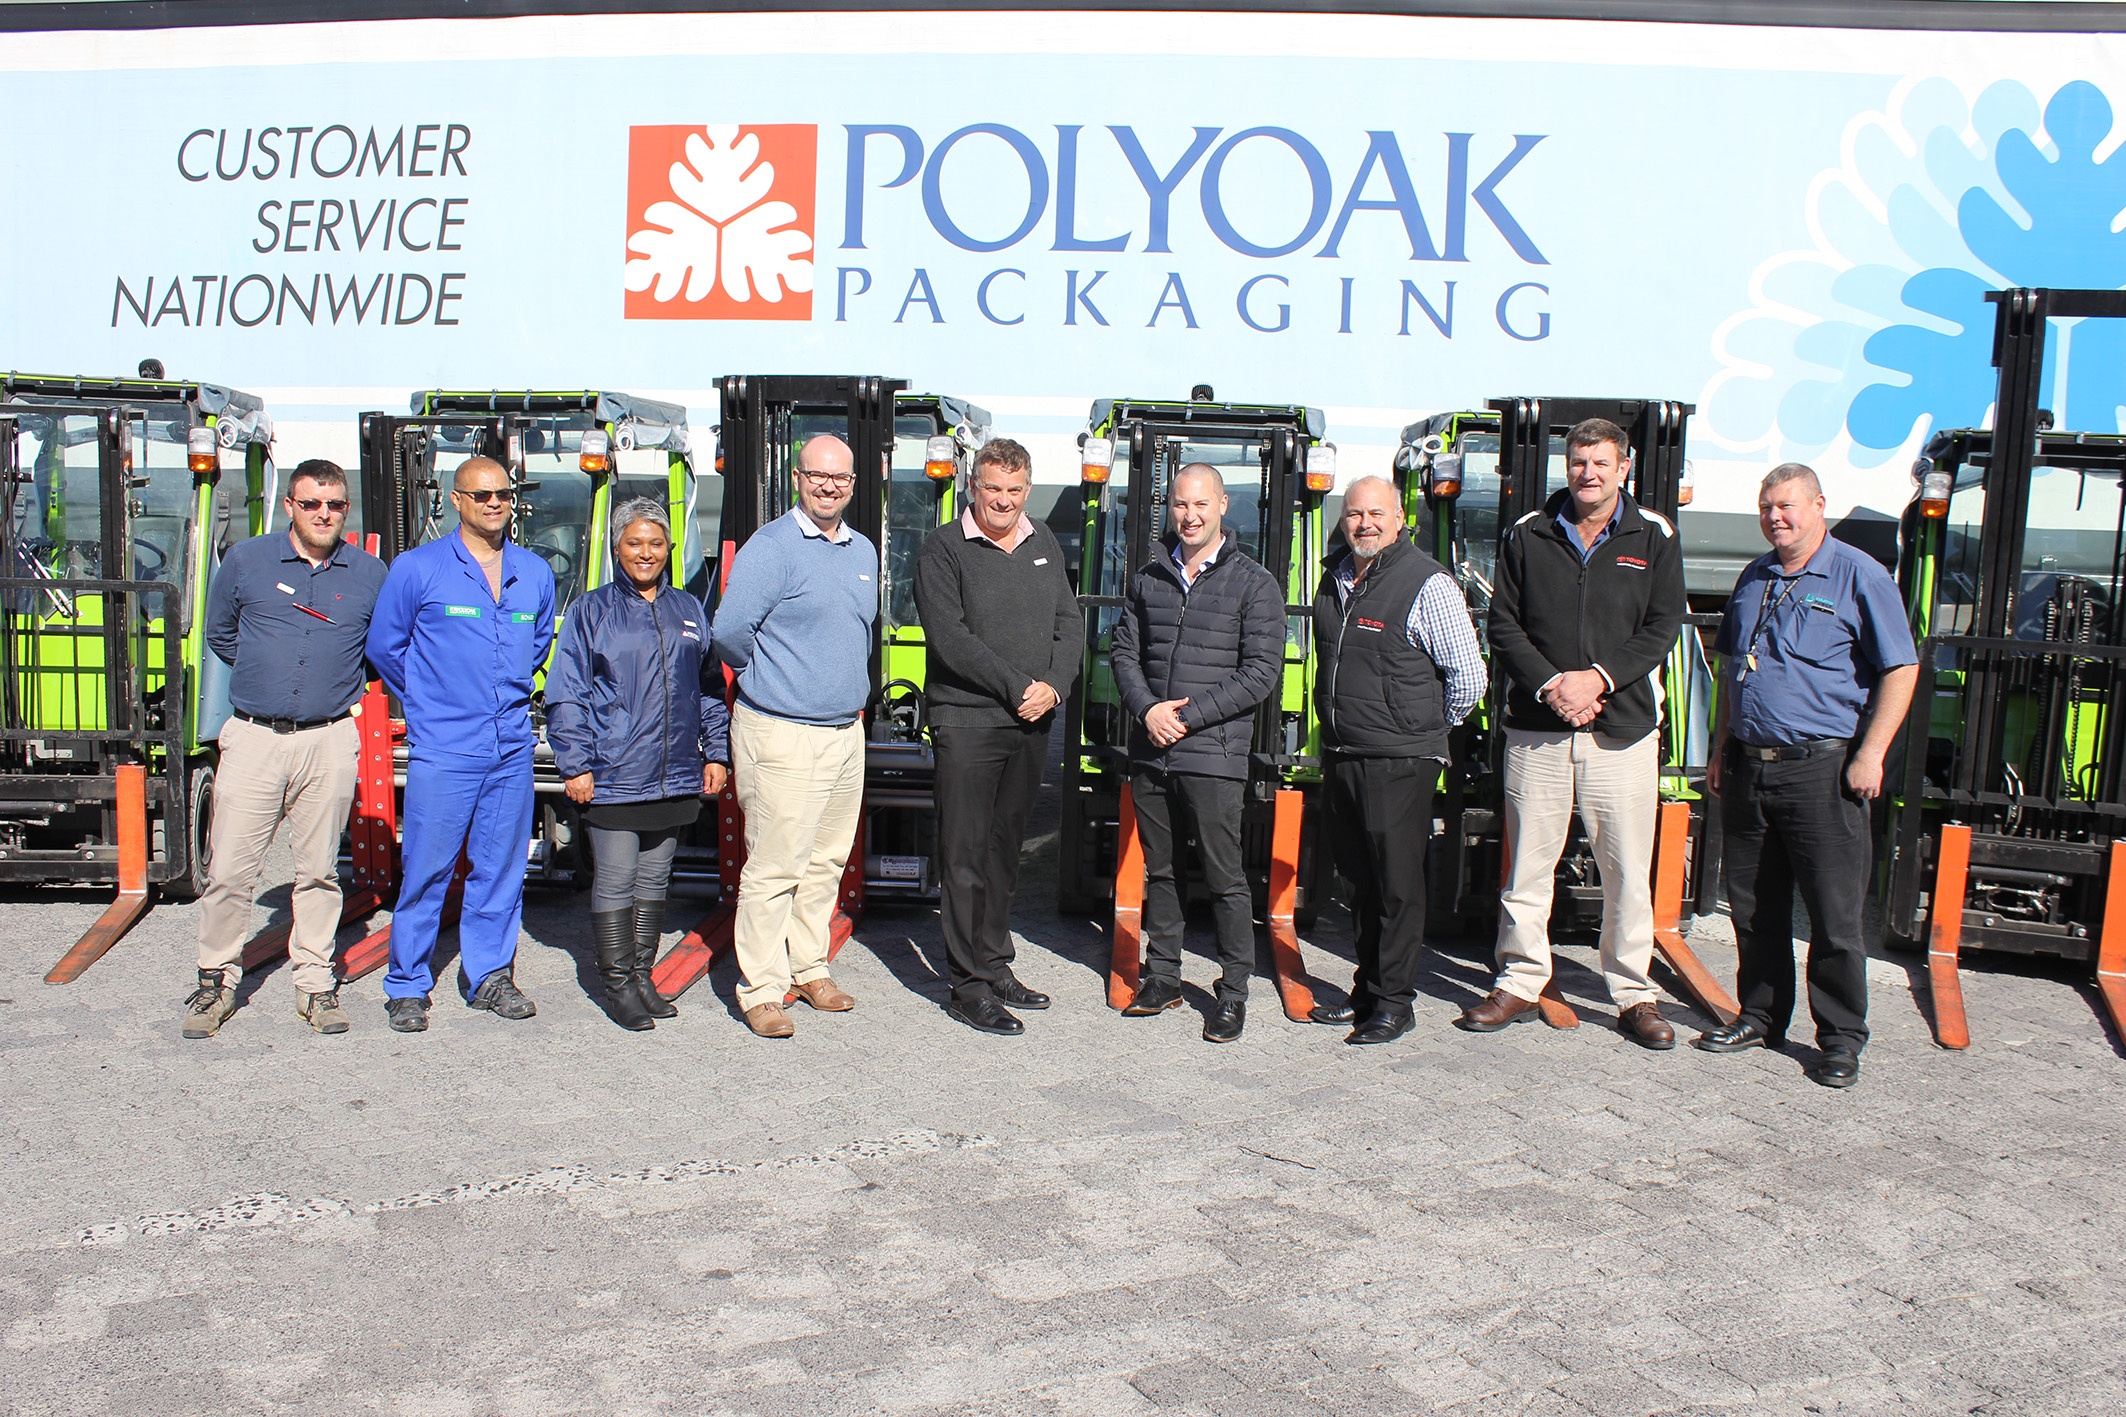 POLYOAK PACKAGING GOES GREEN WITH TOYOTA FORKLIFT